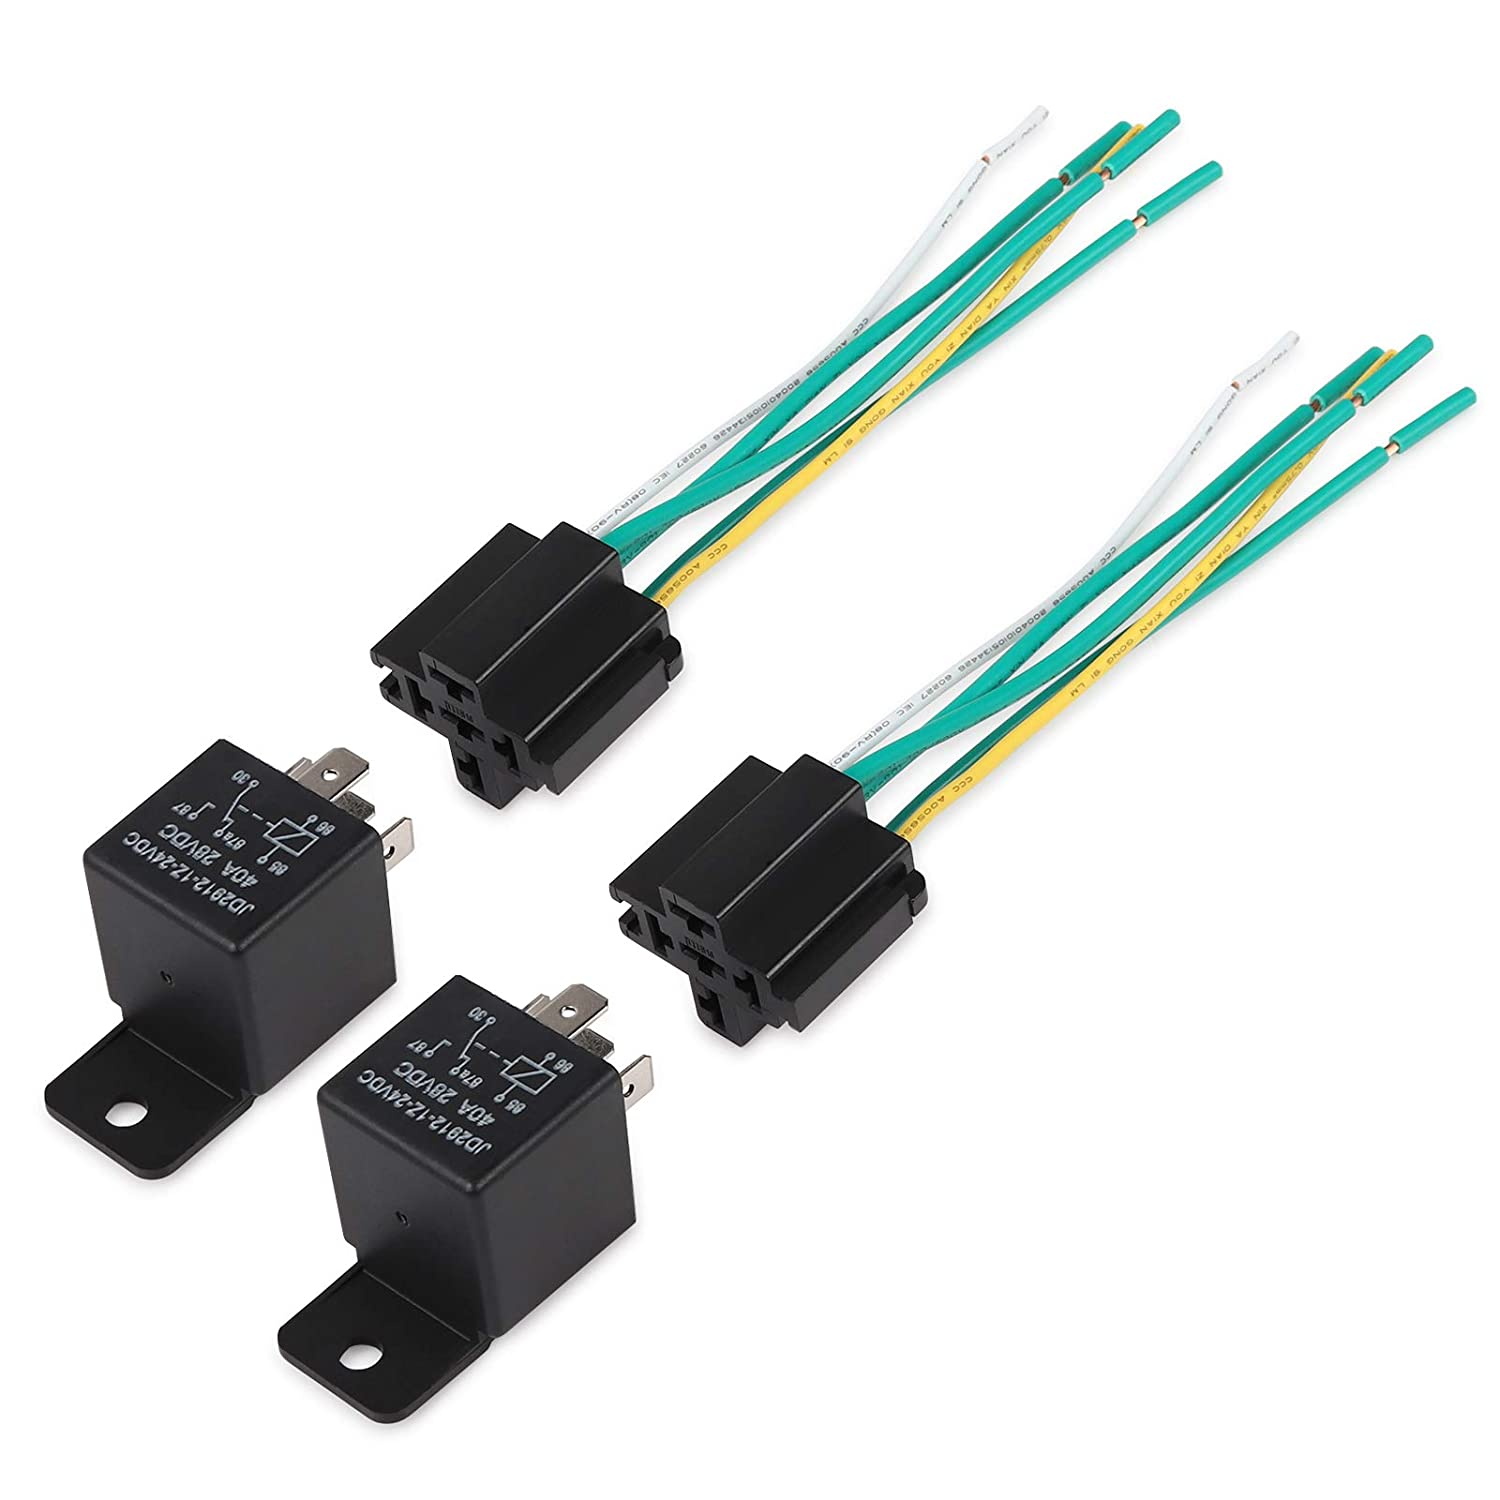 Pack of 5 Ehdis/® Car Truck Relay Socket Harness kit 5 Pin 5 Pre-wired 24V 40 Amp SPDT Bosch Style Waterproof Motor Relay Contactor Switches Power